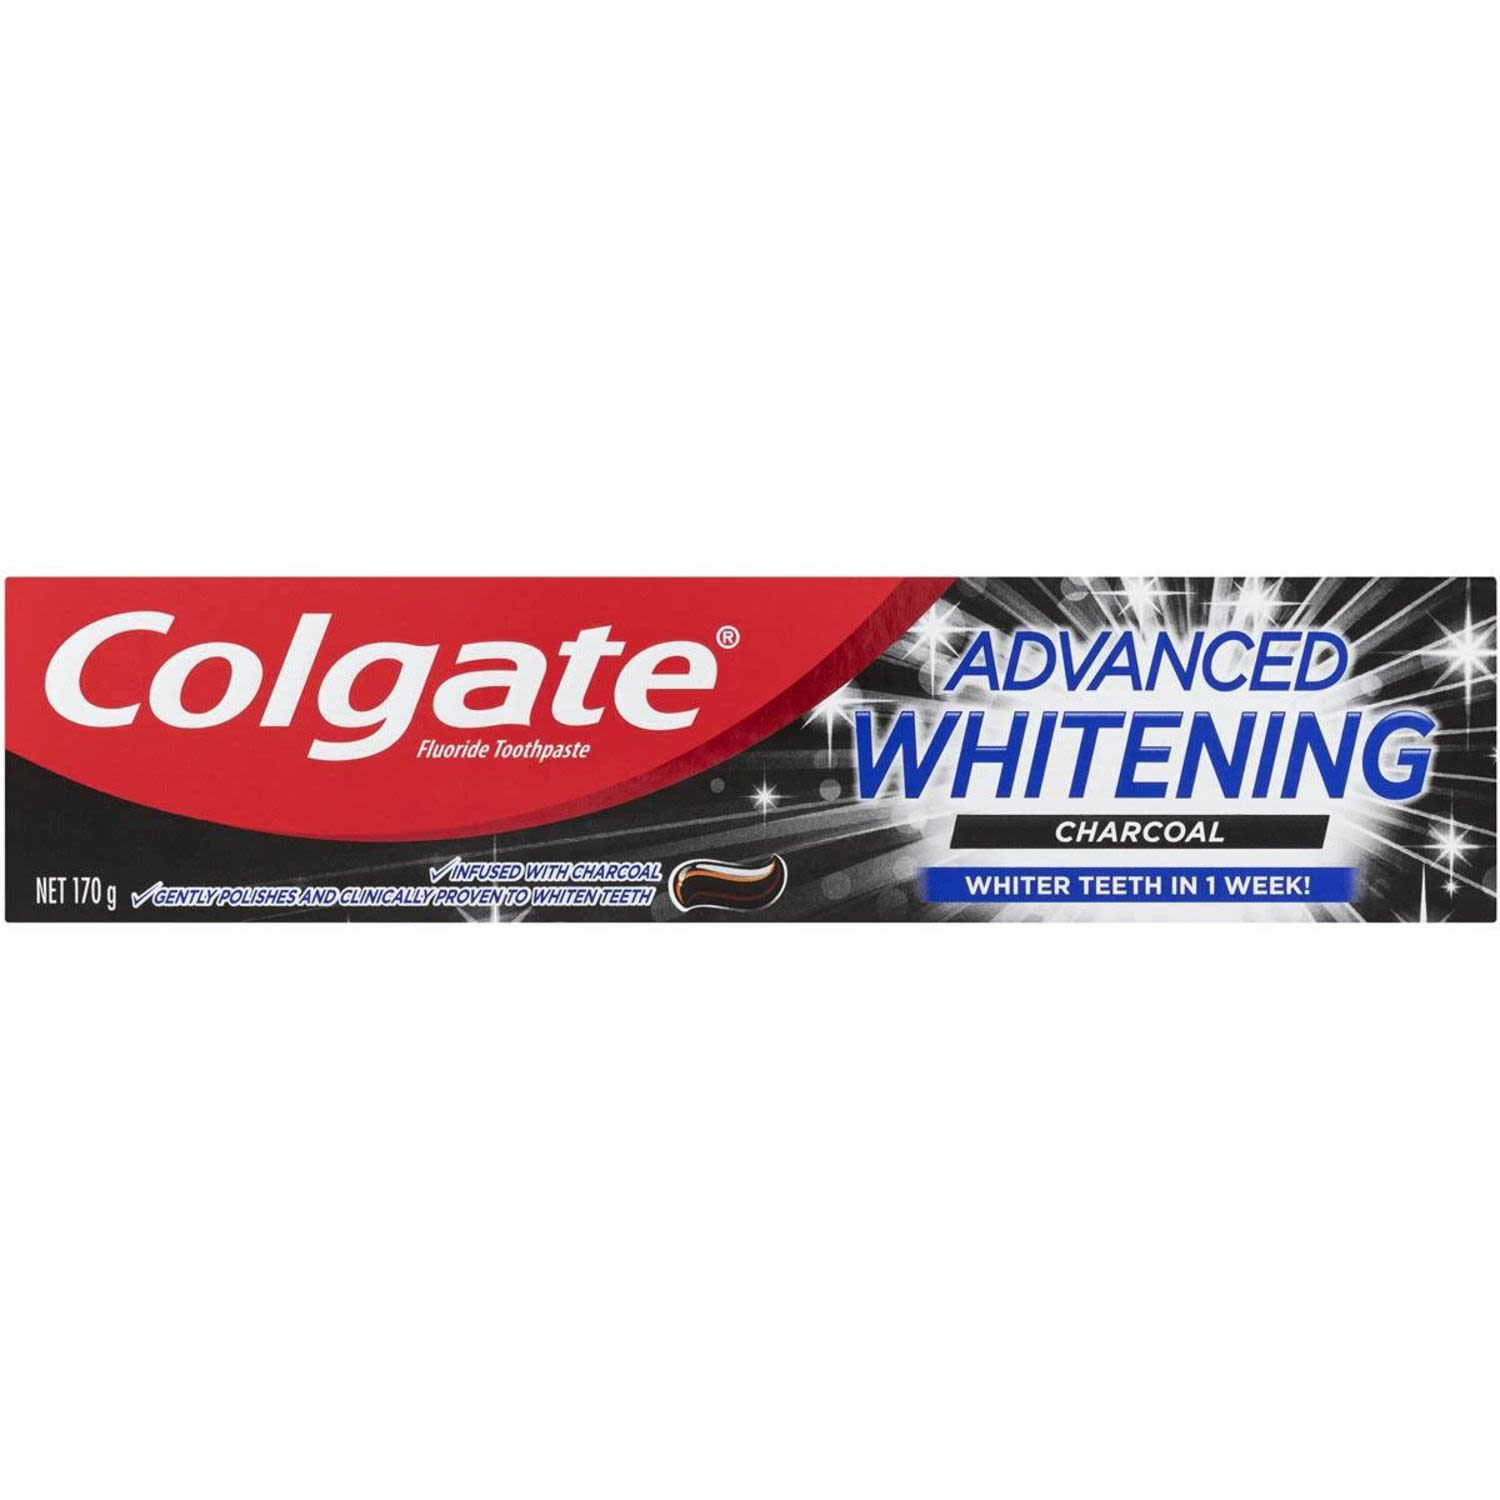 Colgate Advanced Whitening Charcoal Fluoride Toothpaste, 170 Gram